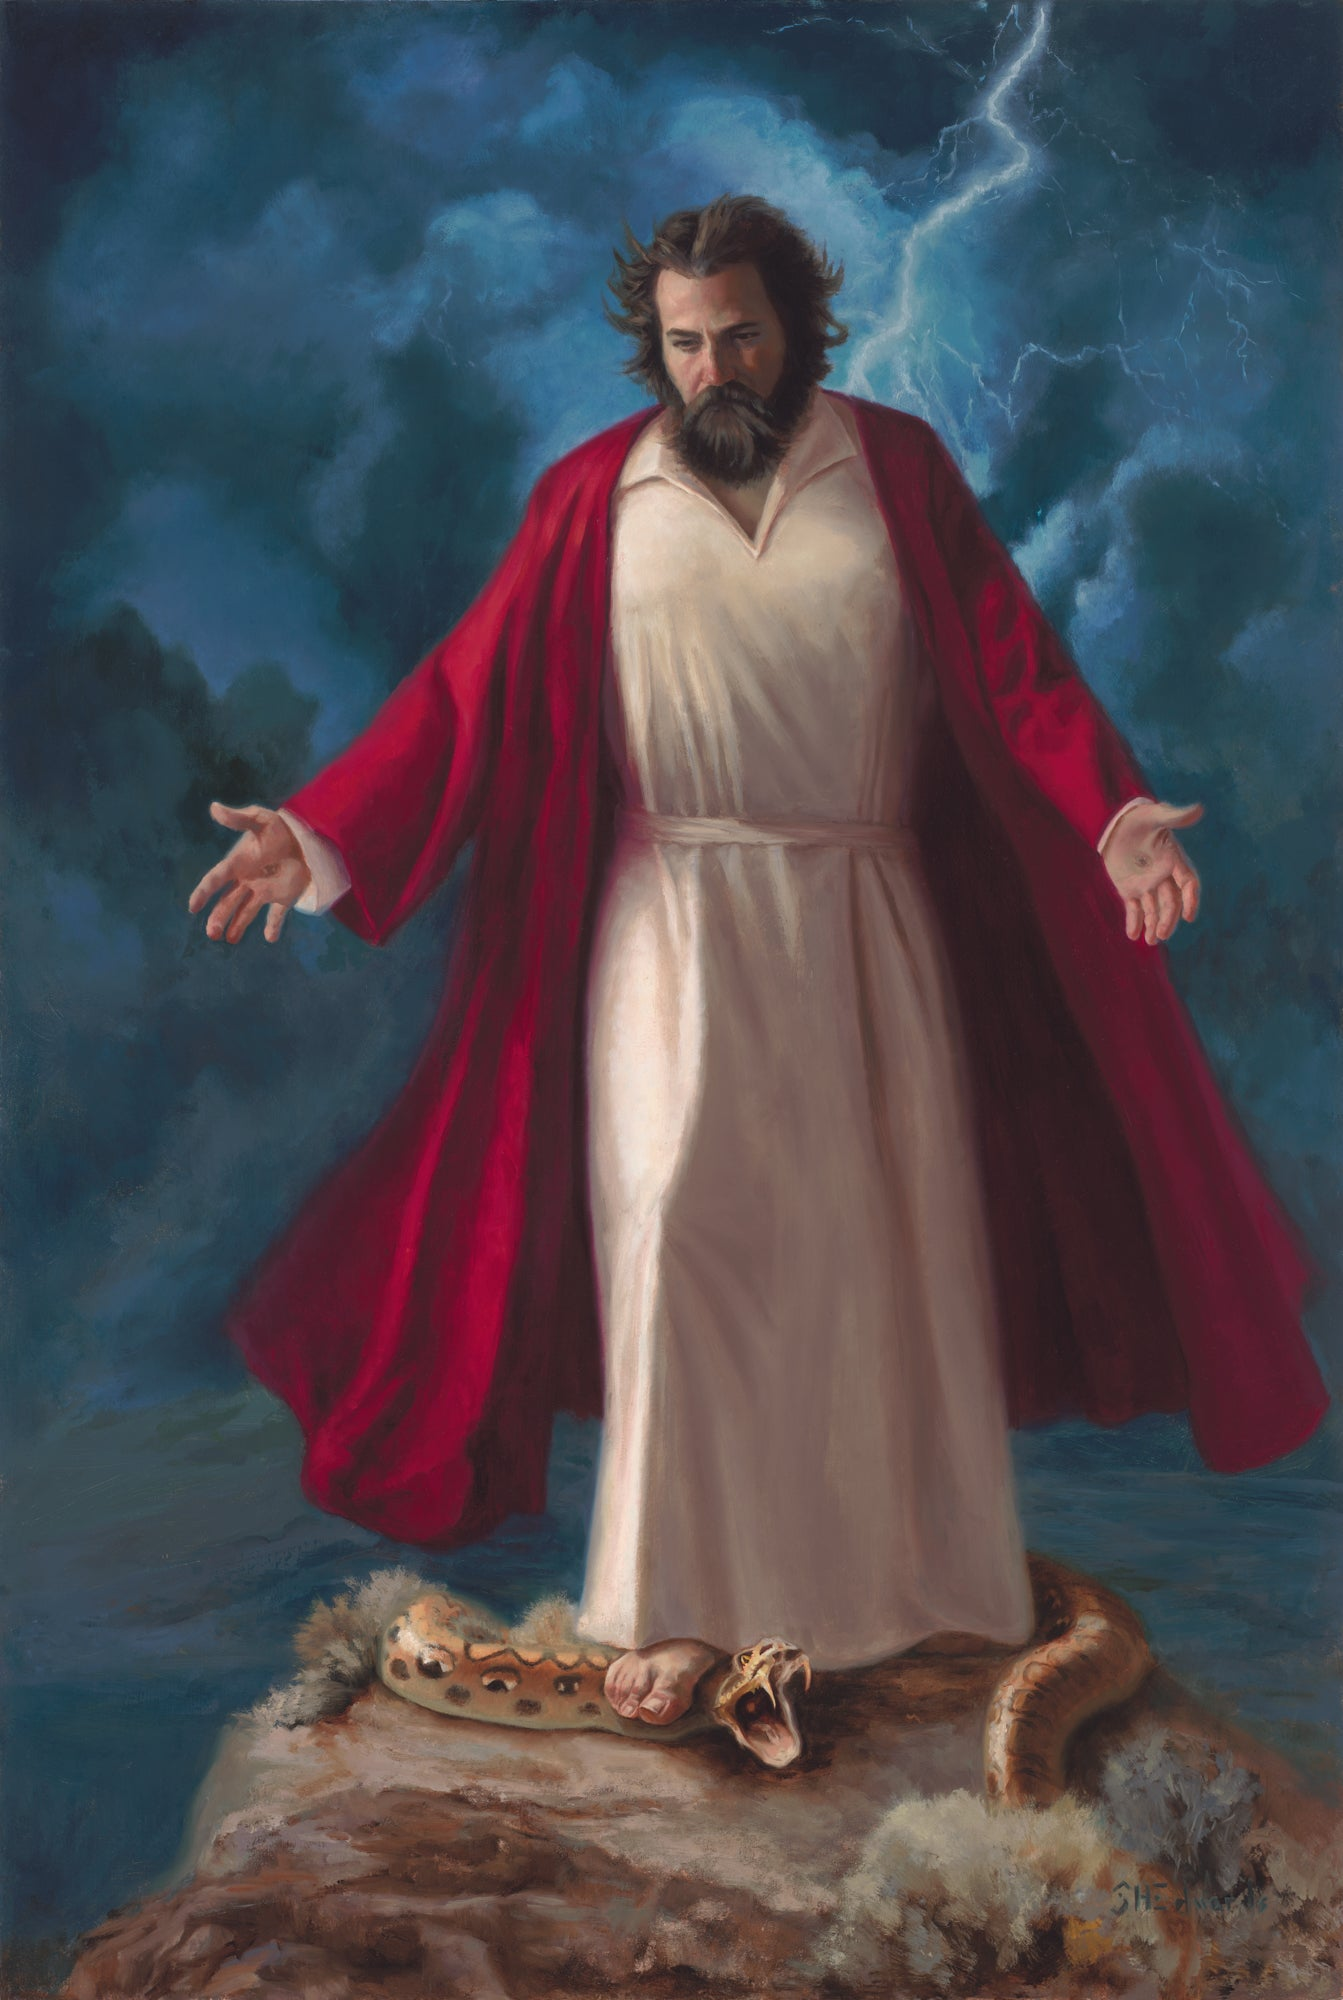 Jesus standing on snake on rock with lightning.